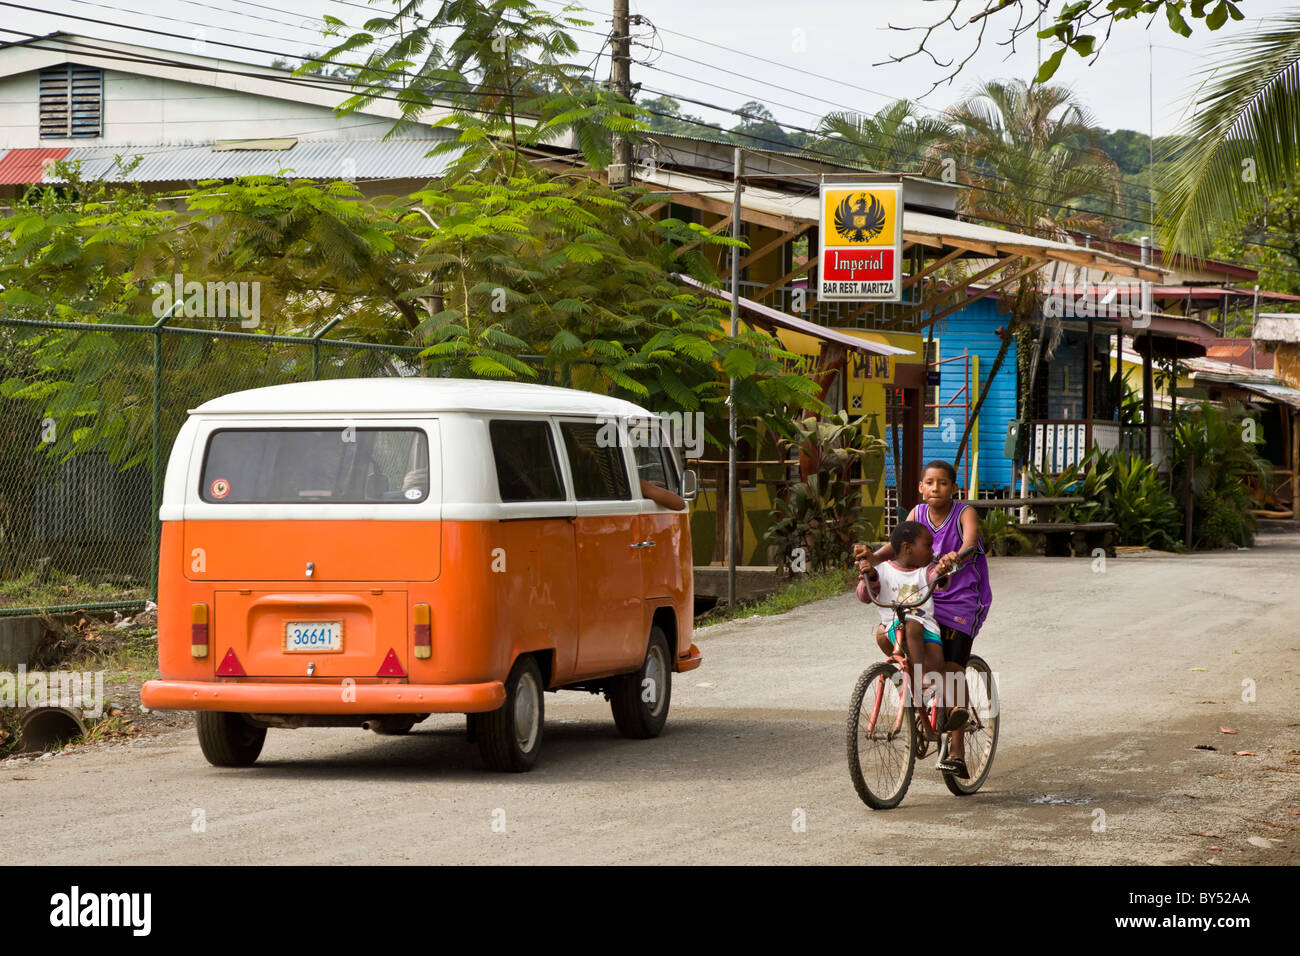 Two kids riding a bike on the street with an orange VW bus Puerto Viejo, Costa Rica. - Stock Image